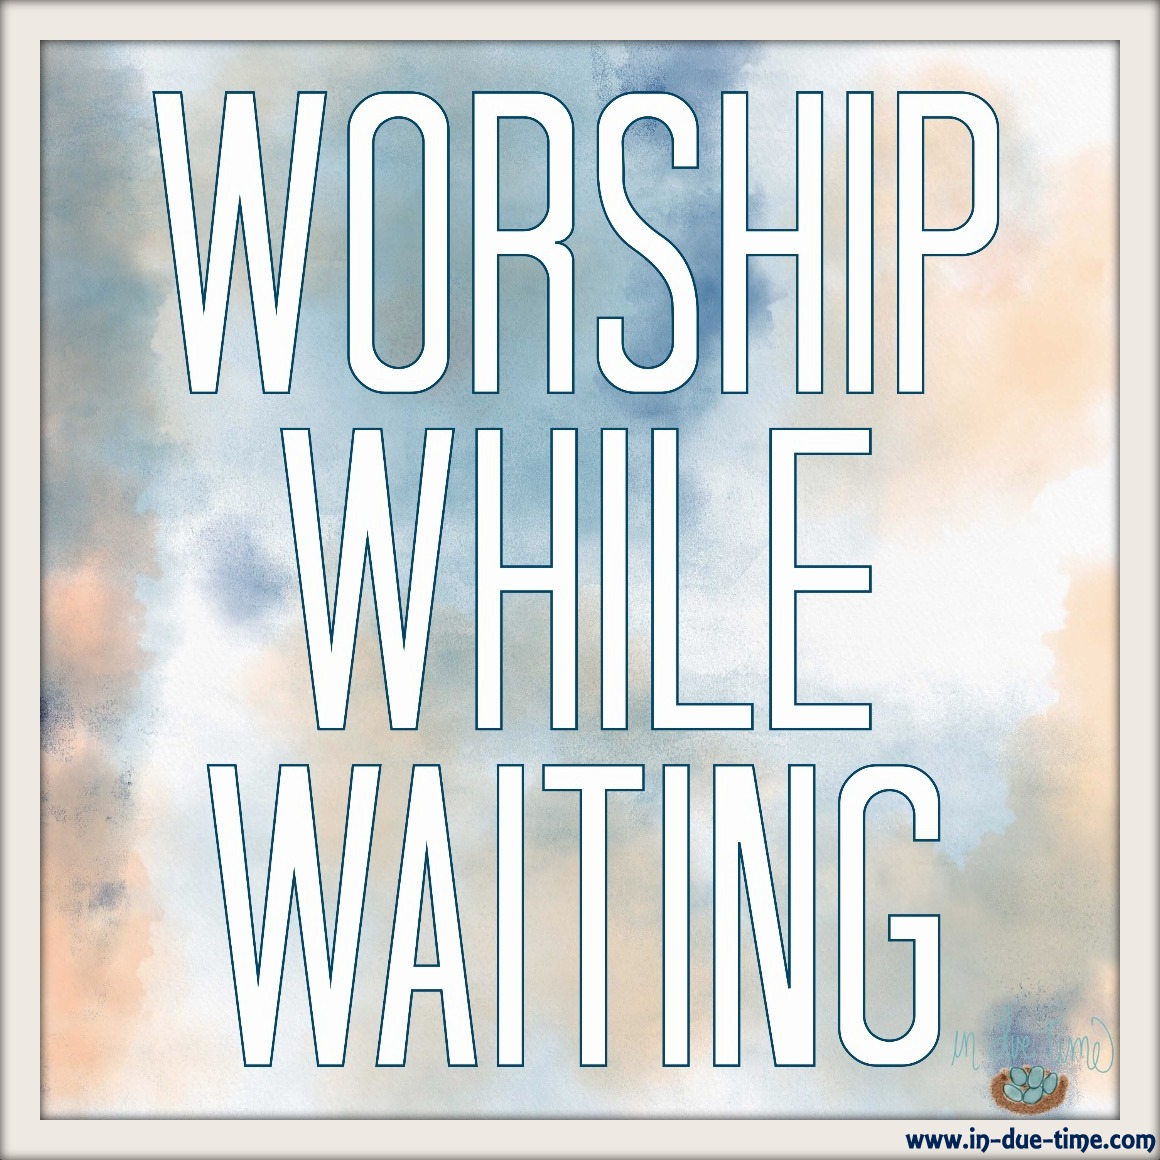 Worship While Waiting